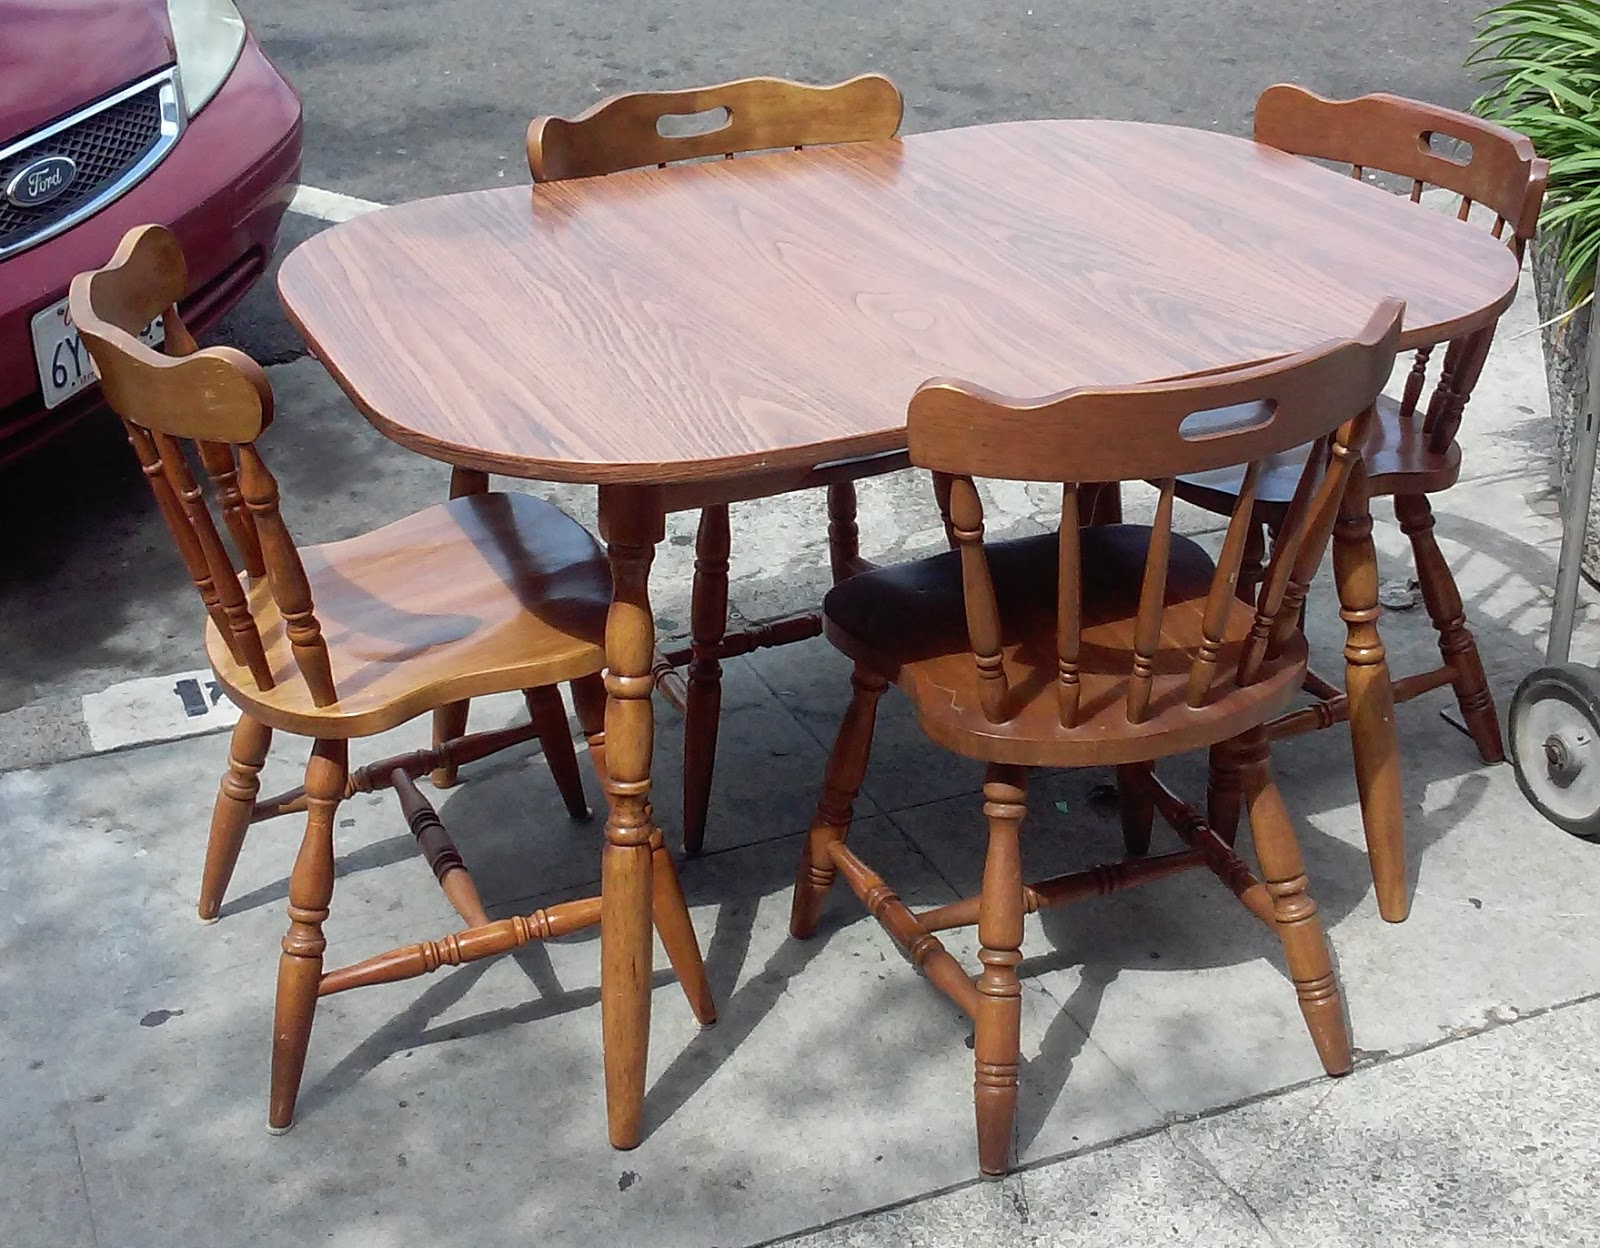 Formica Table And Chairs Uhuru Furniture And Collectibles Sold Colonial Style